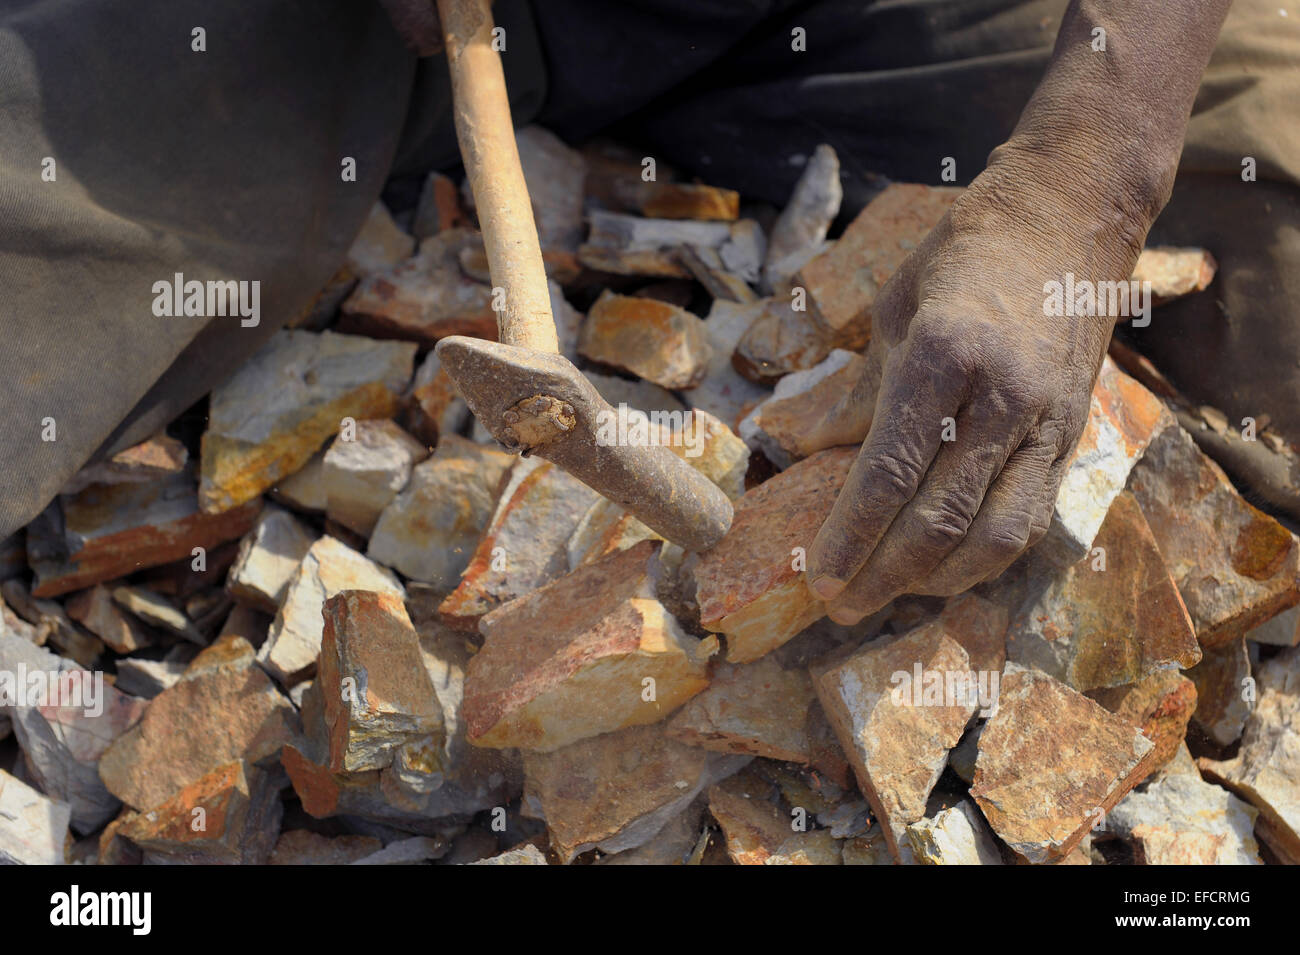 Breaking rocks by hand in a quarry near Accra, Ghana, West Africa. - Stock Image